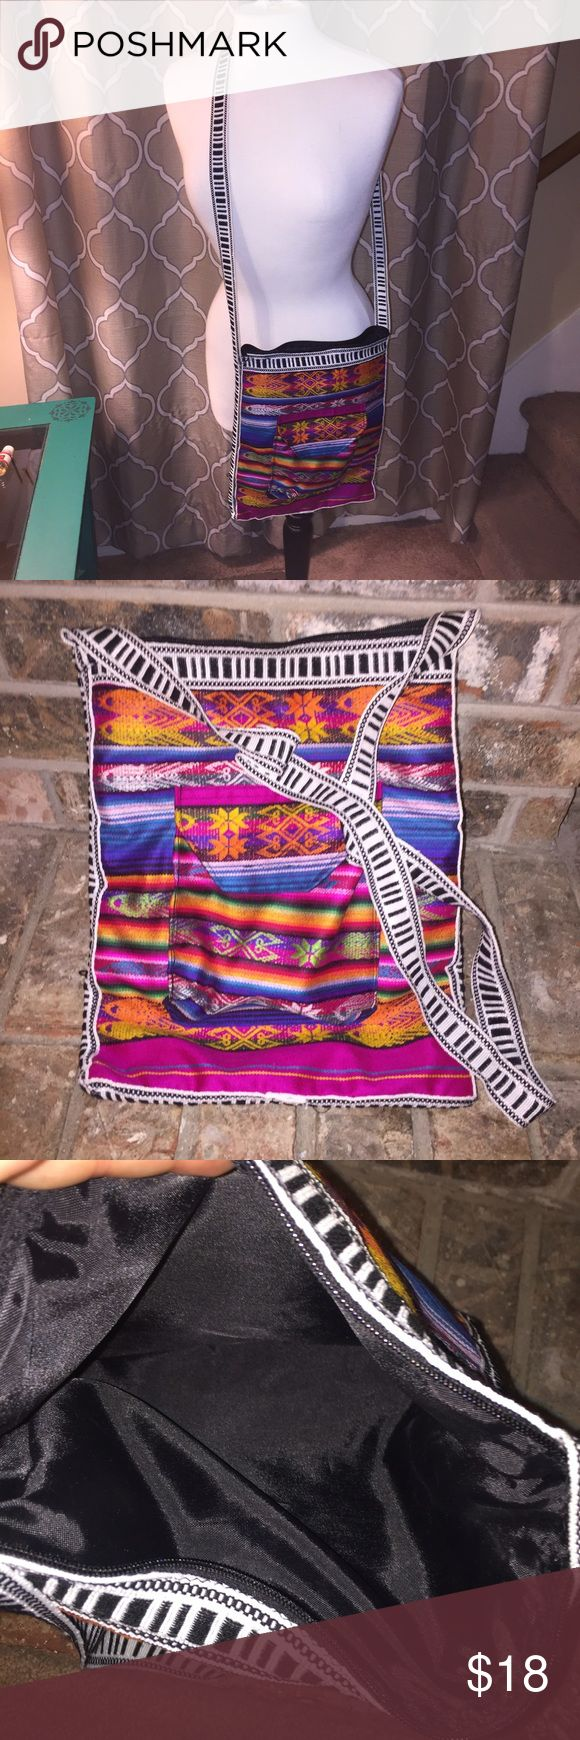 Colorful Indian Aztec crossbody bag BoHo hippie Fabric :  Mixed color yarn.   New without tags hand crafted  handbag. Multi Thread embroidery with zipper closure